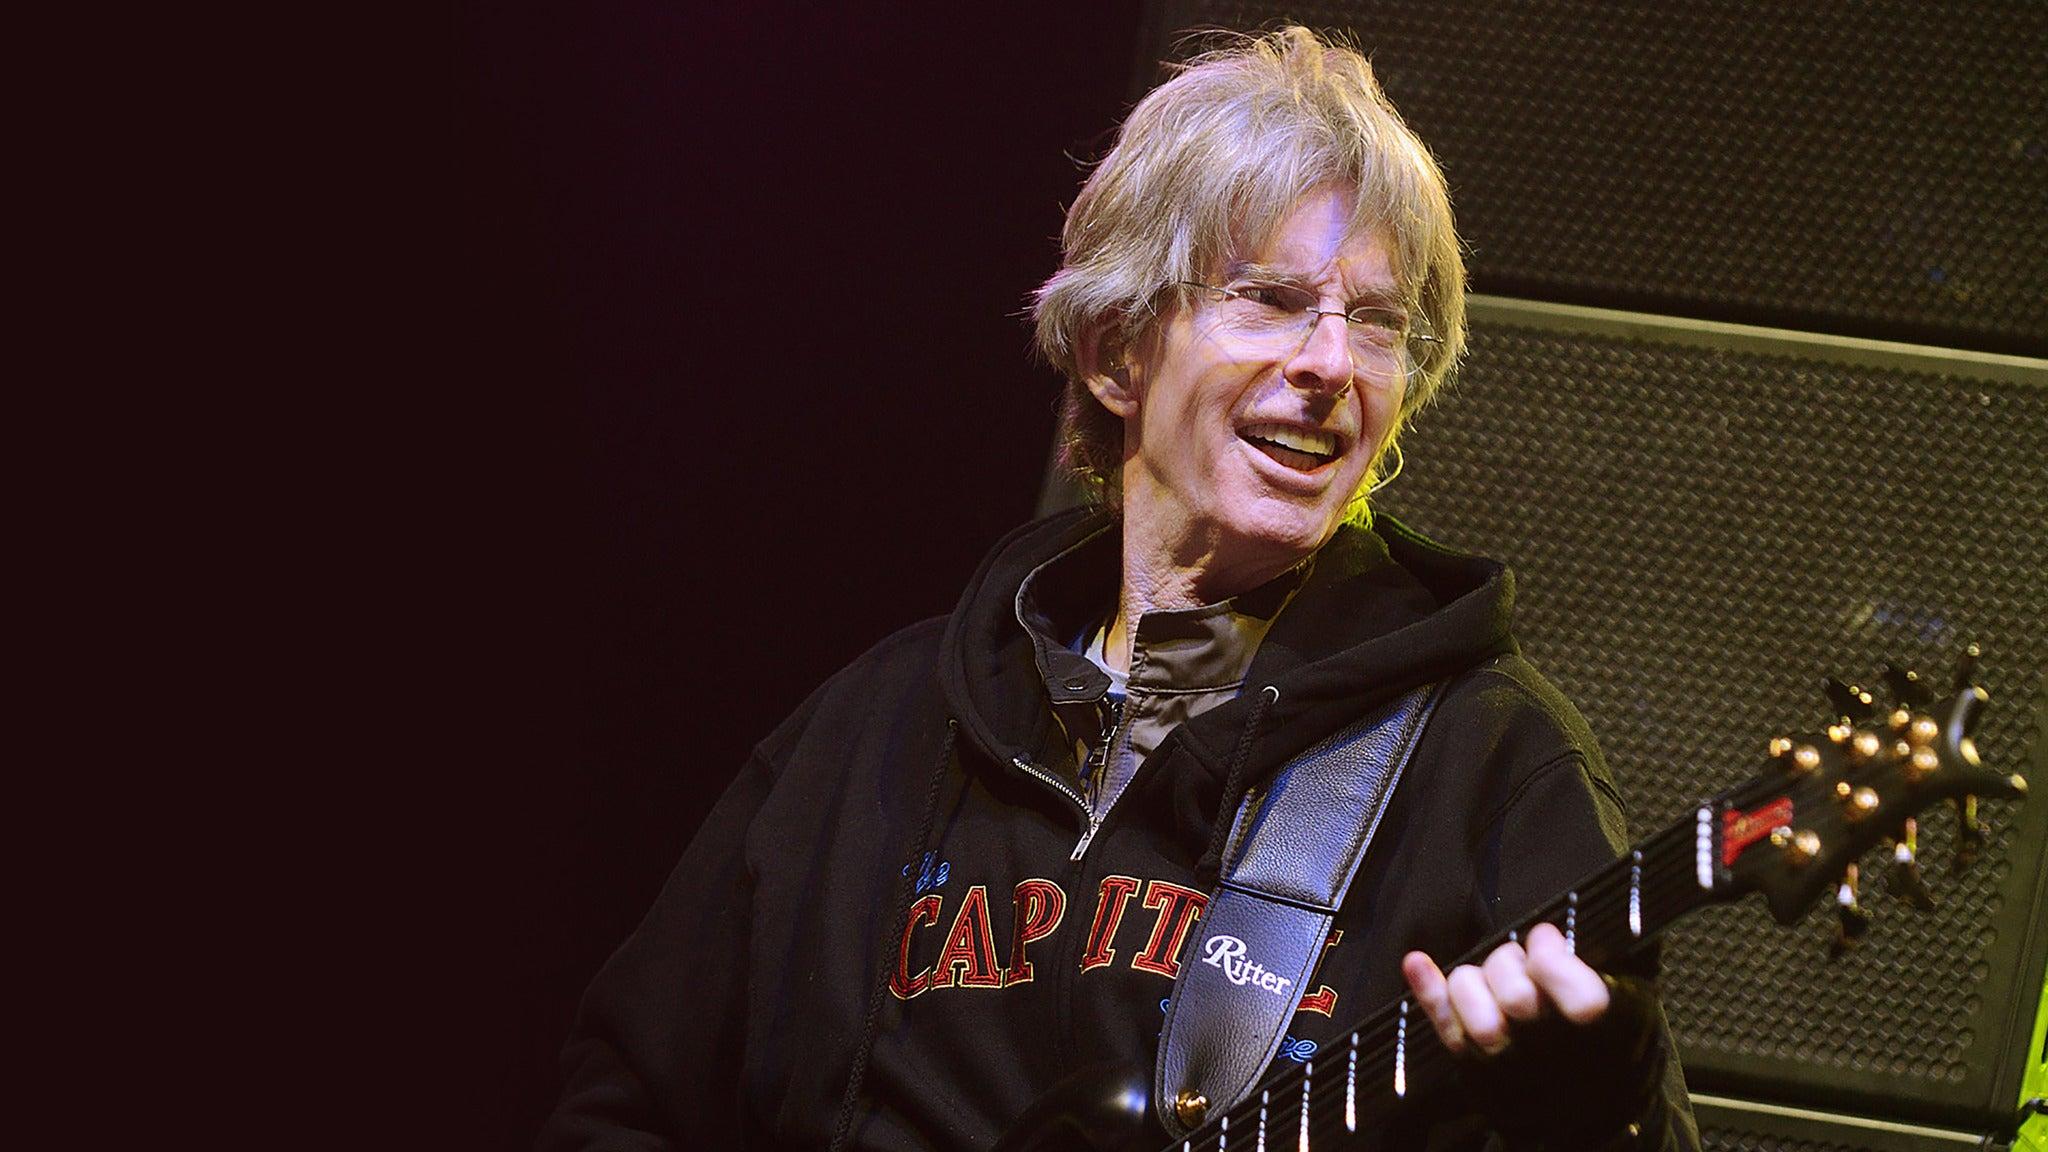 Phil Lesh w/ Terrapin Family Band at Red Rocks Amphitheatre